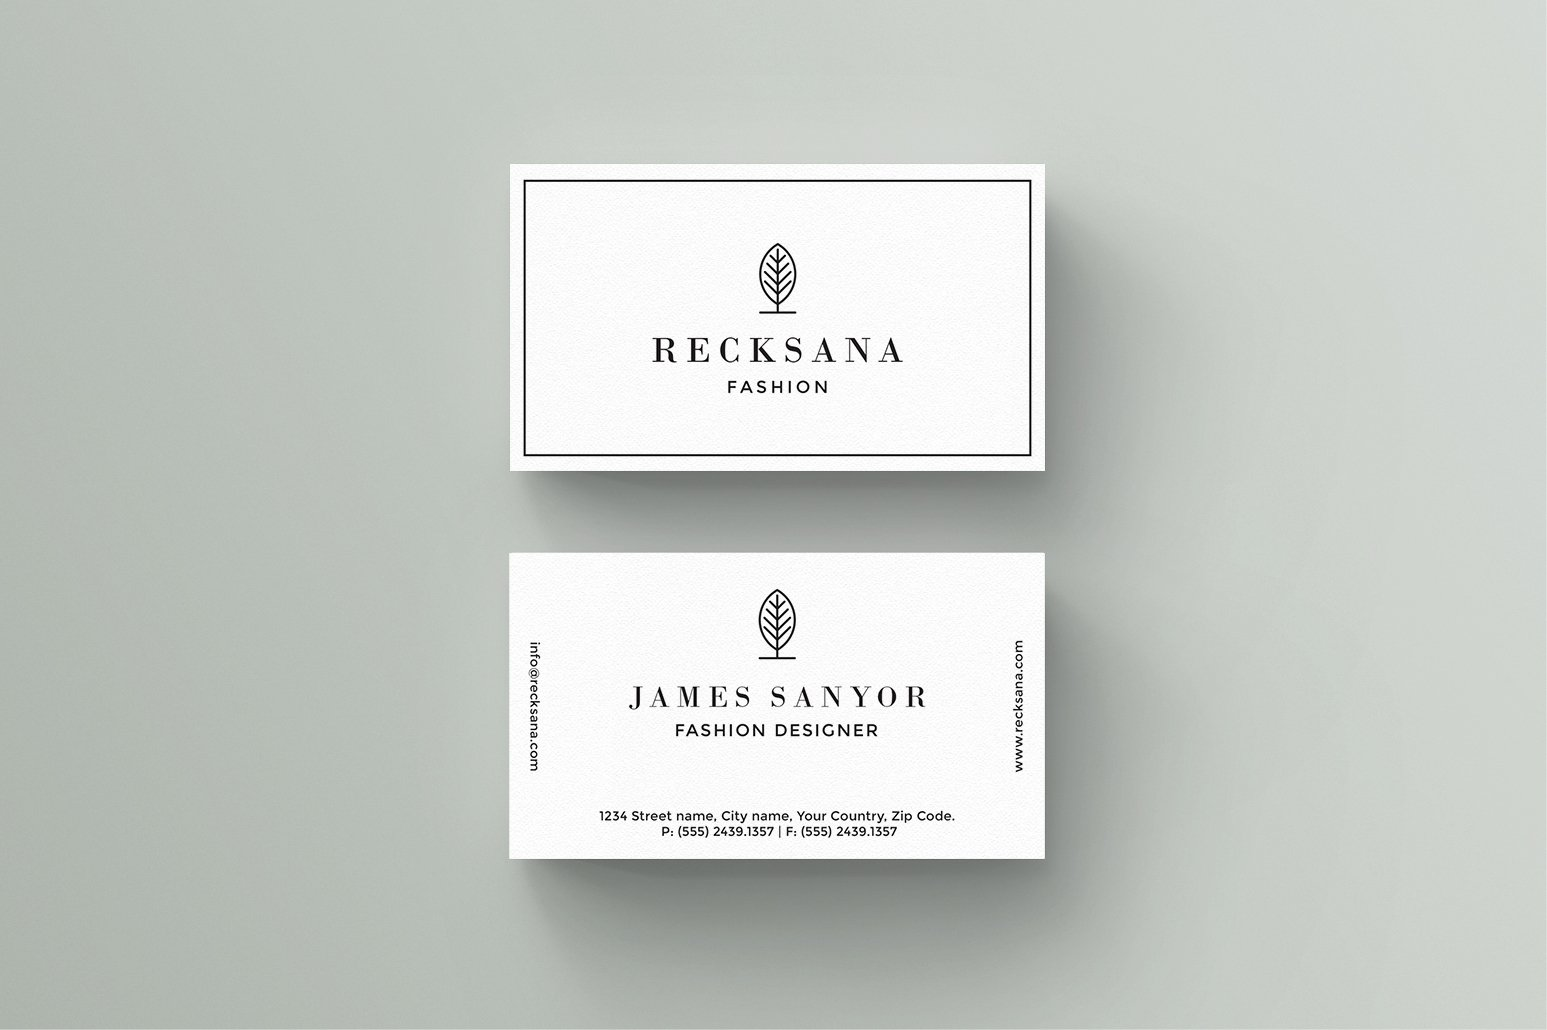 Sexy Business Card Photos Graphics Fonts Themes Templates - Business card templates